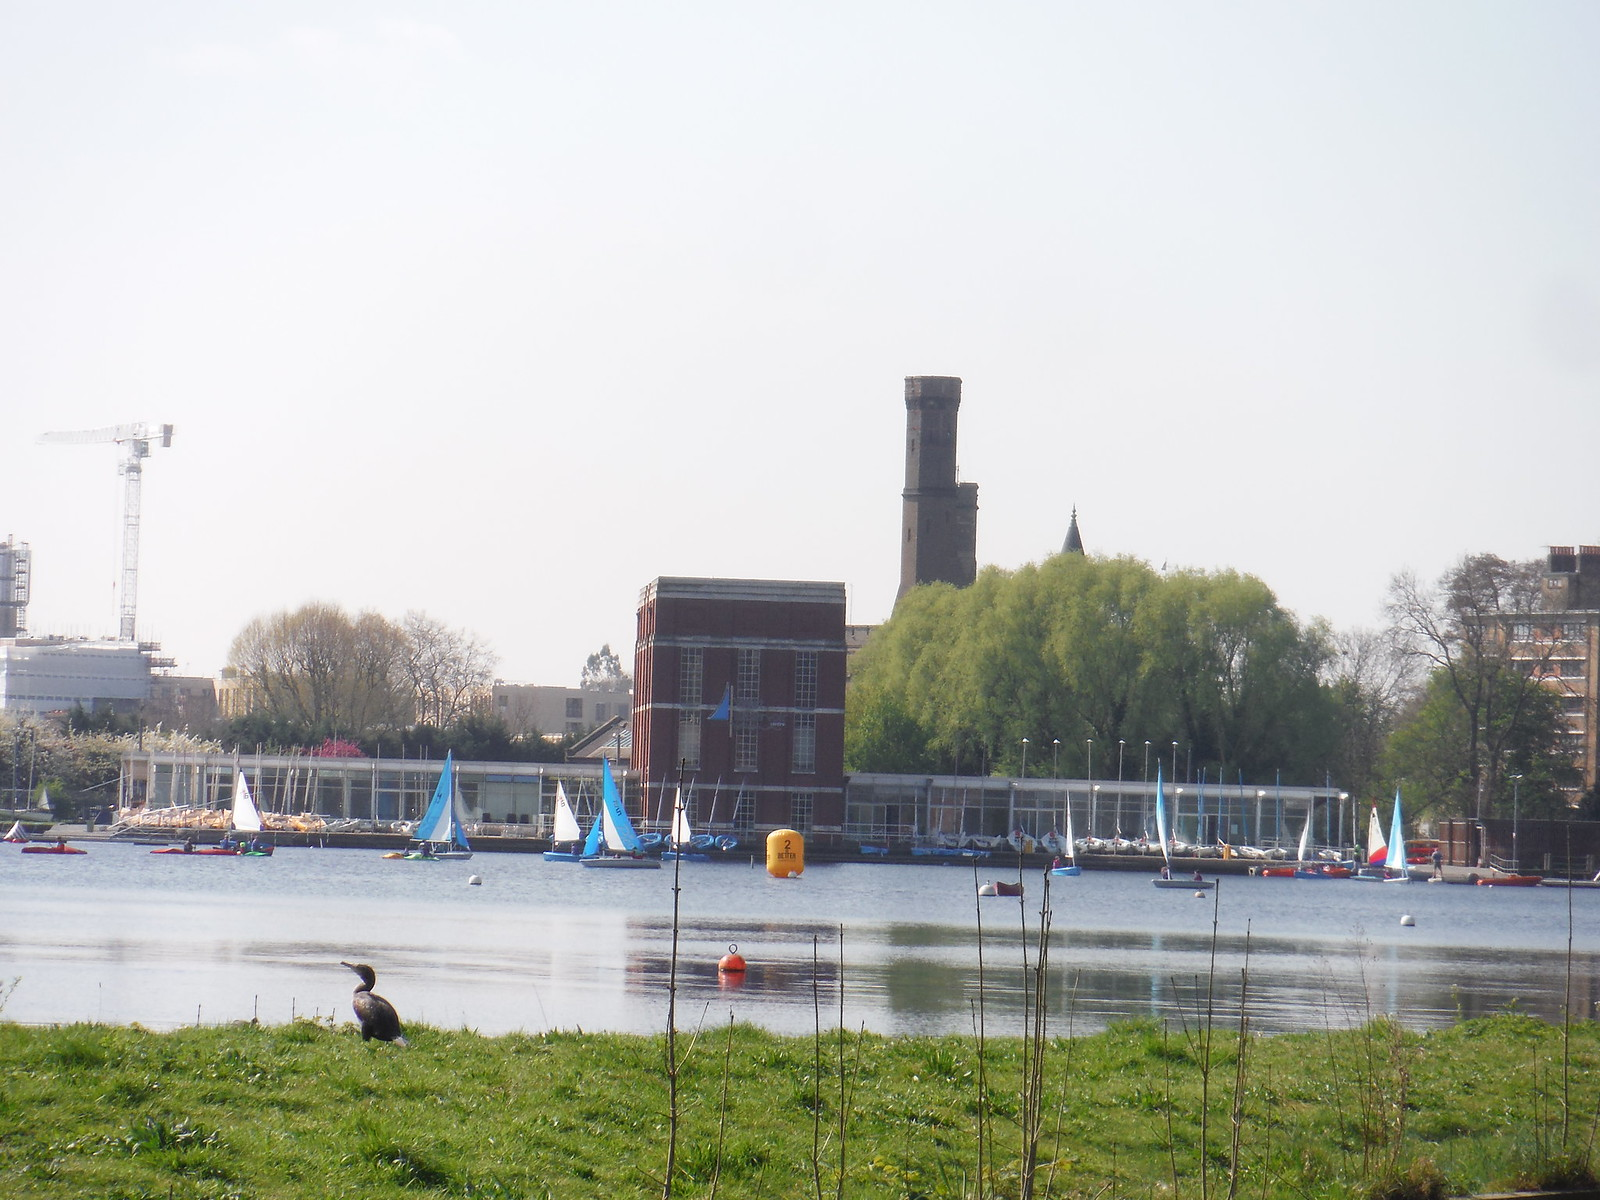 West Reservoir Centre, Stoke Newington SWC Short Walk 26 - Woodberry Wetlands (Stoke Newington Reservoirs)